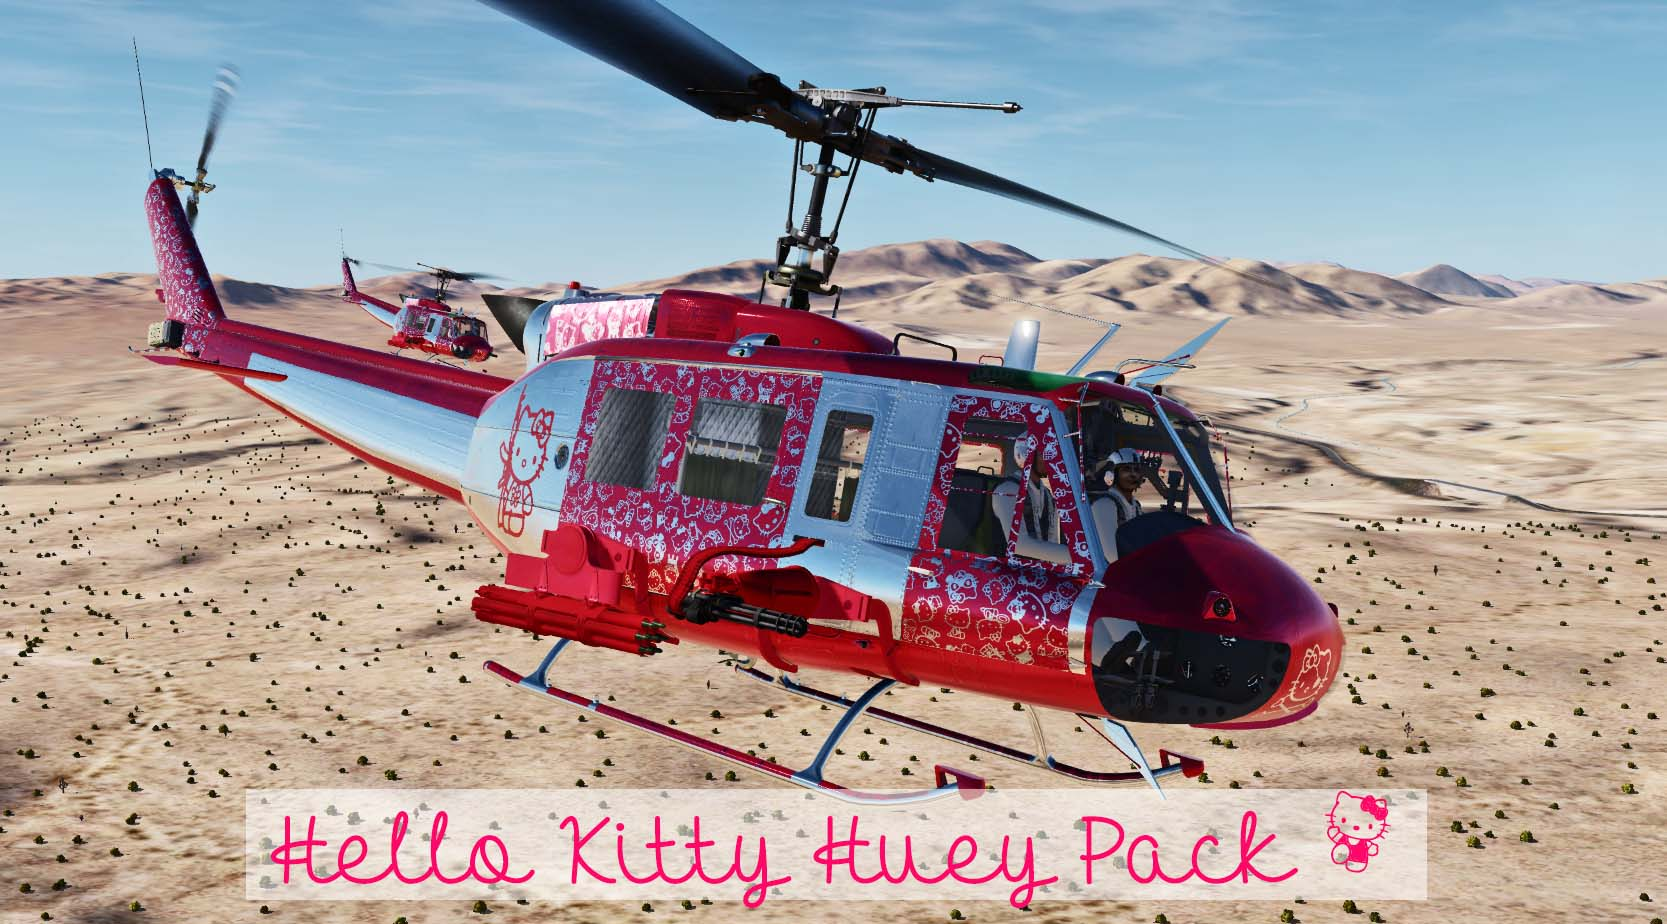 UH-1H Hello Kitty pack - Livrery + Cockpit